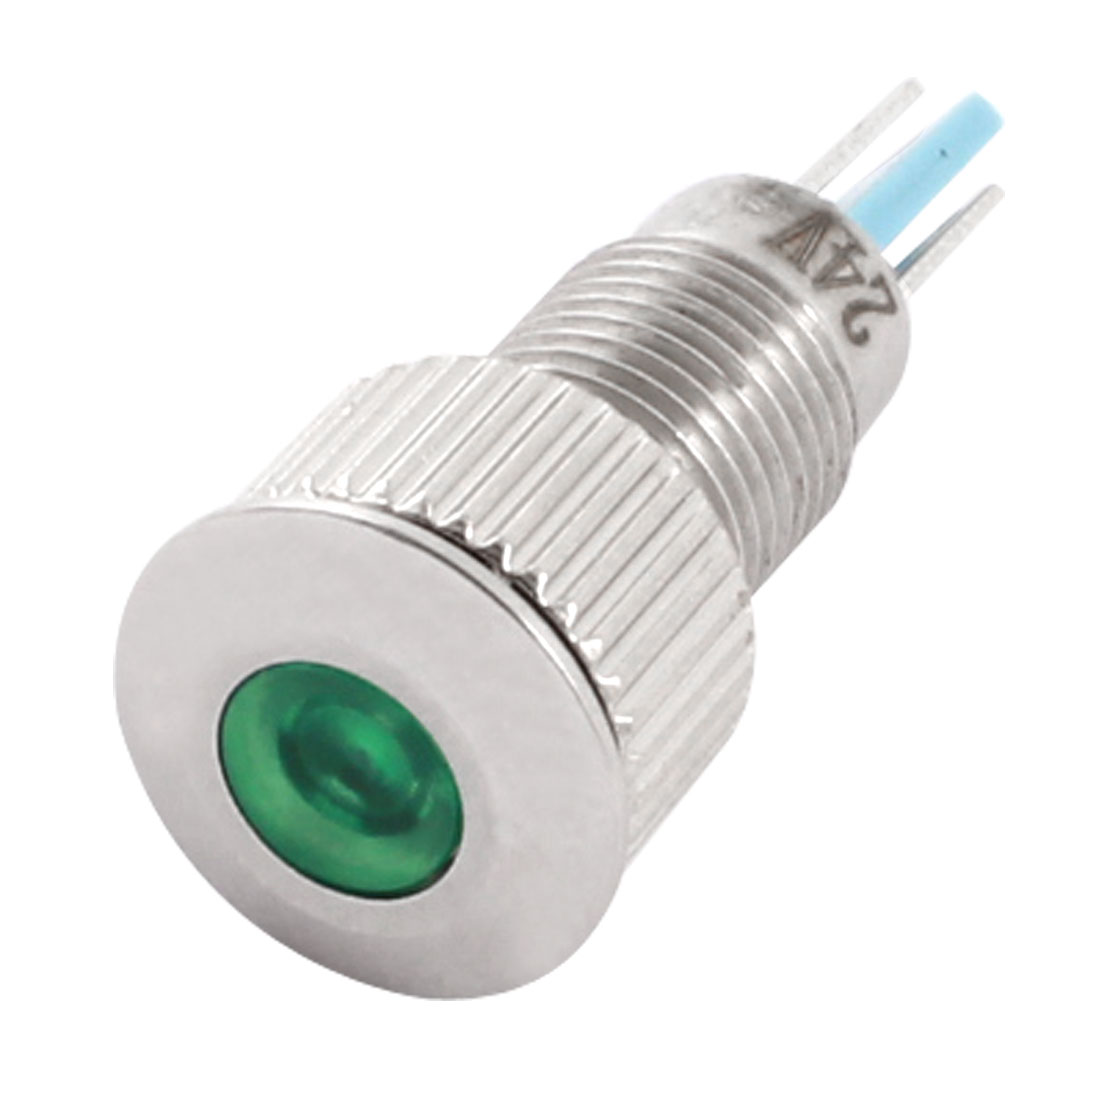 DC24V 8mm Thread Panel Mount Stainless Steel Green LED Signal Indicator Light Pilot Lamp Bulb